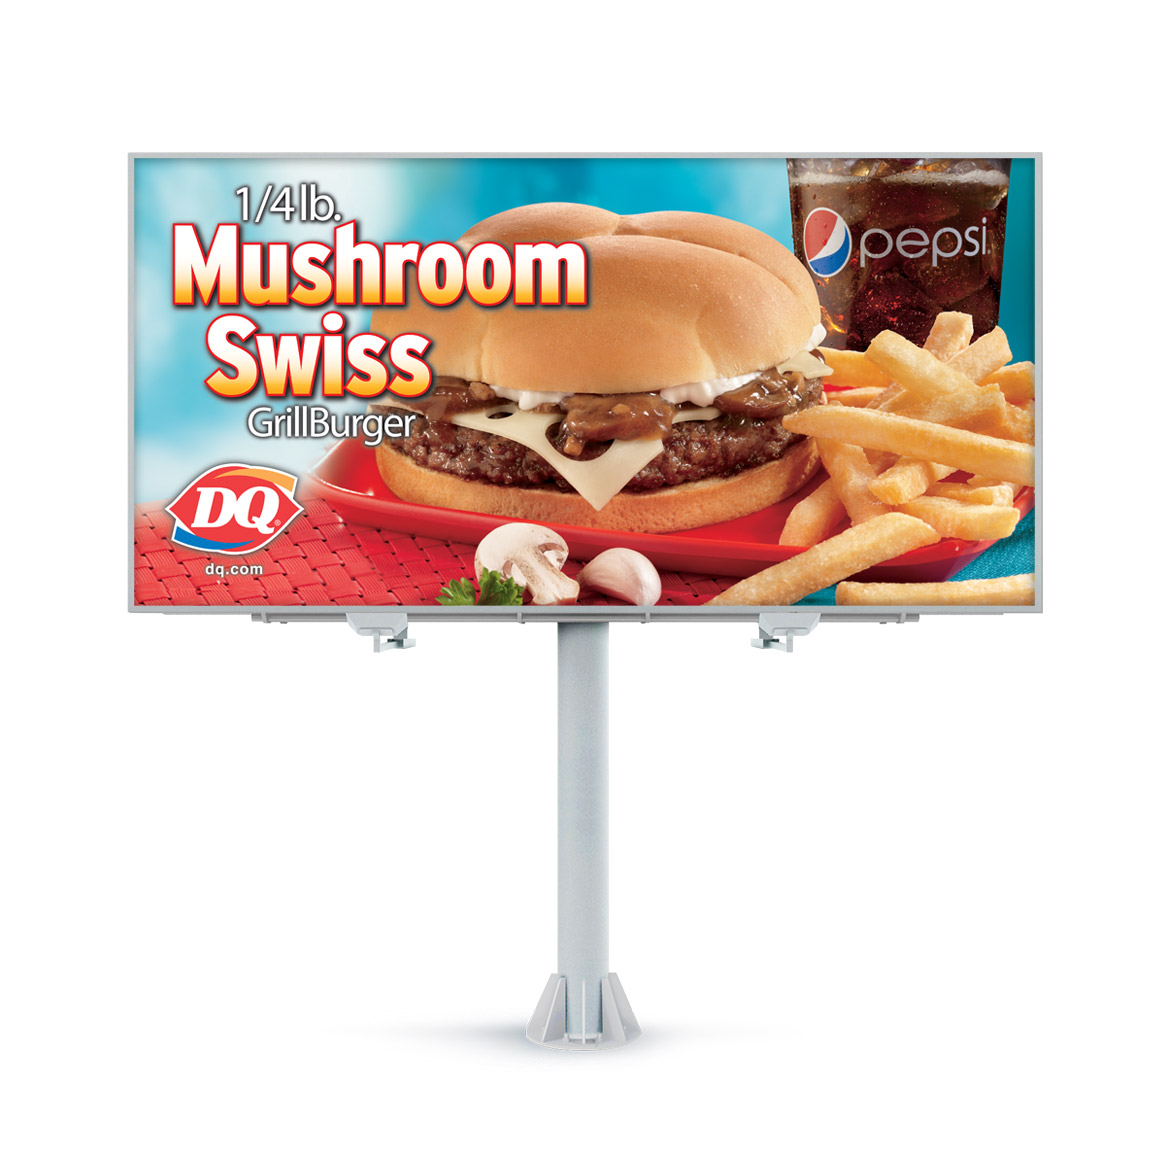 Billboard-Design-Dairy-Queen-Mushroom-Swiss